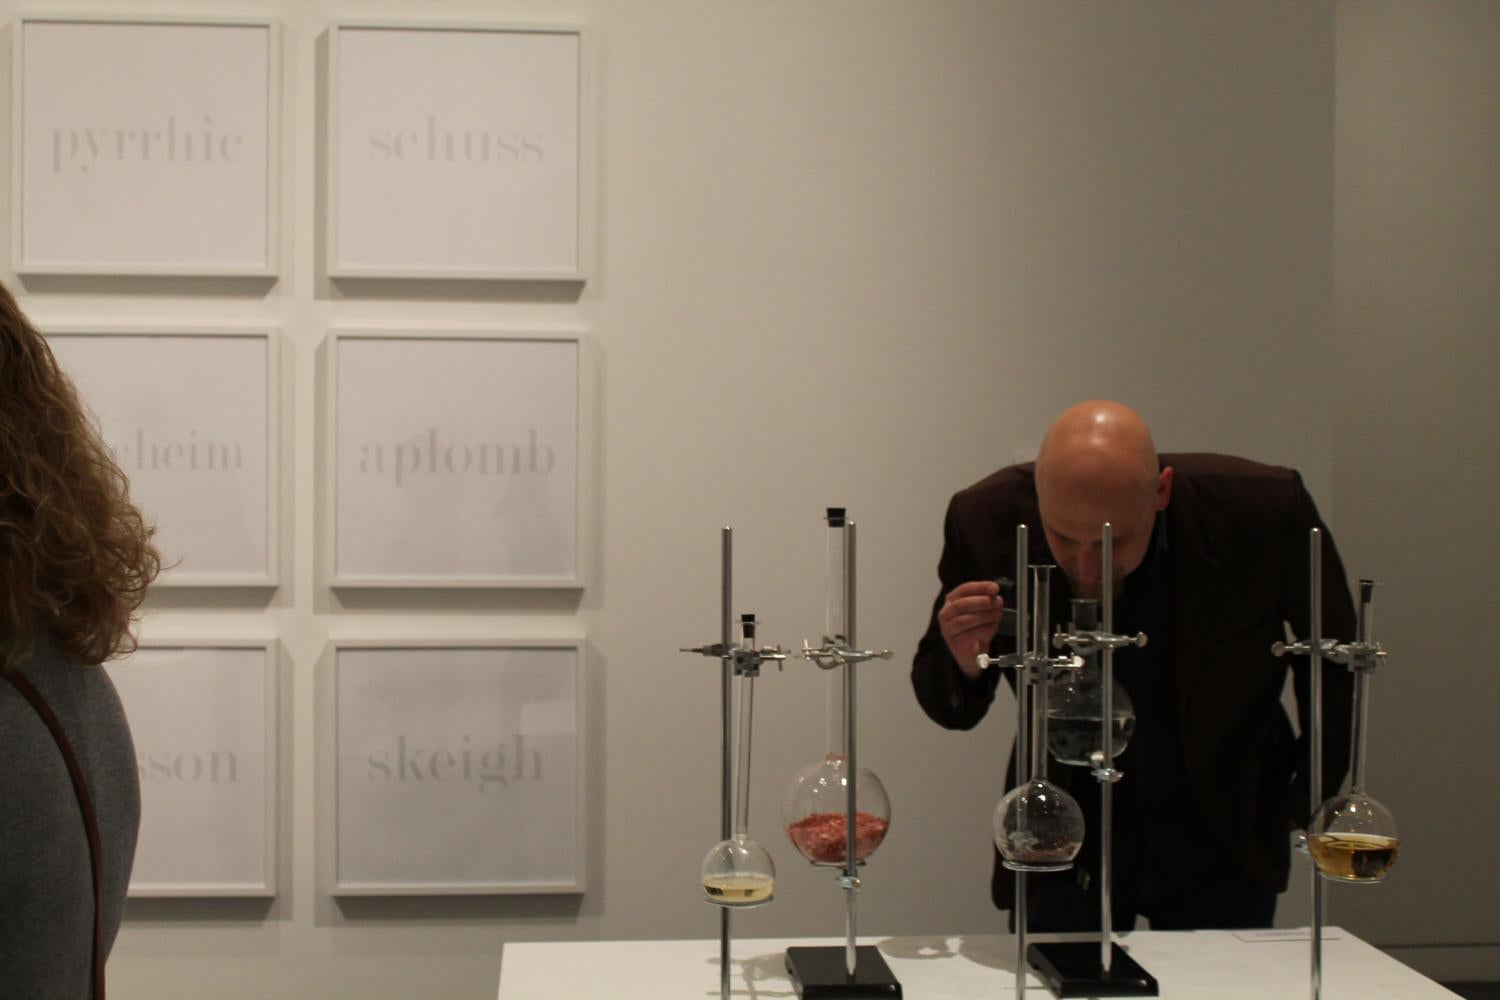 A man looks at a scientific instrument that's part of an art installation.